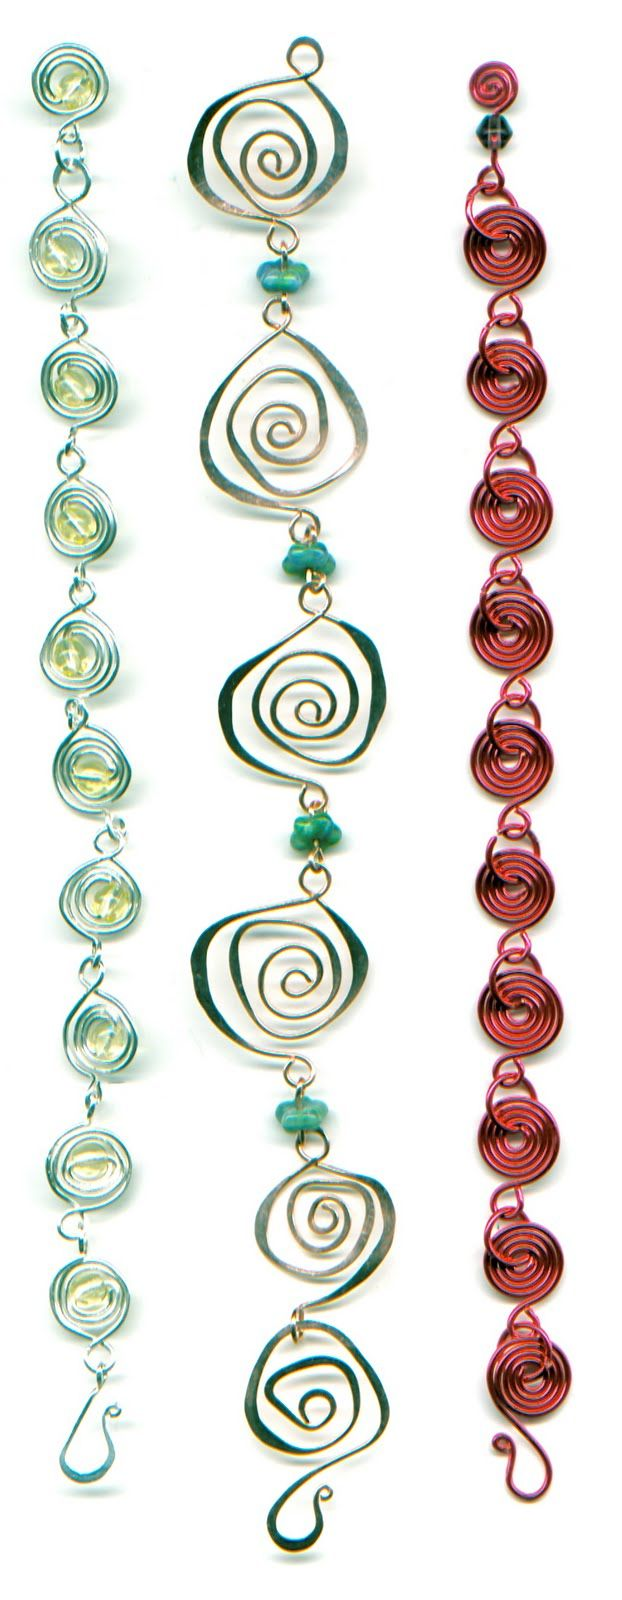 673 best wirework images on Pinterest | Jewerly, Jewelery and Wire ...